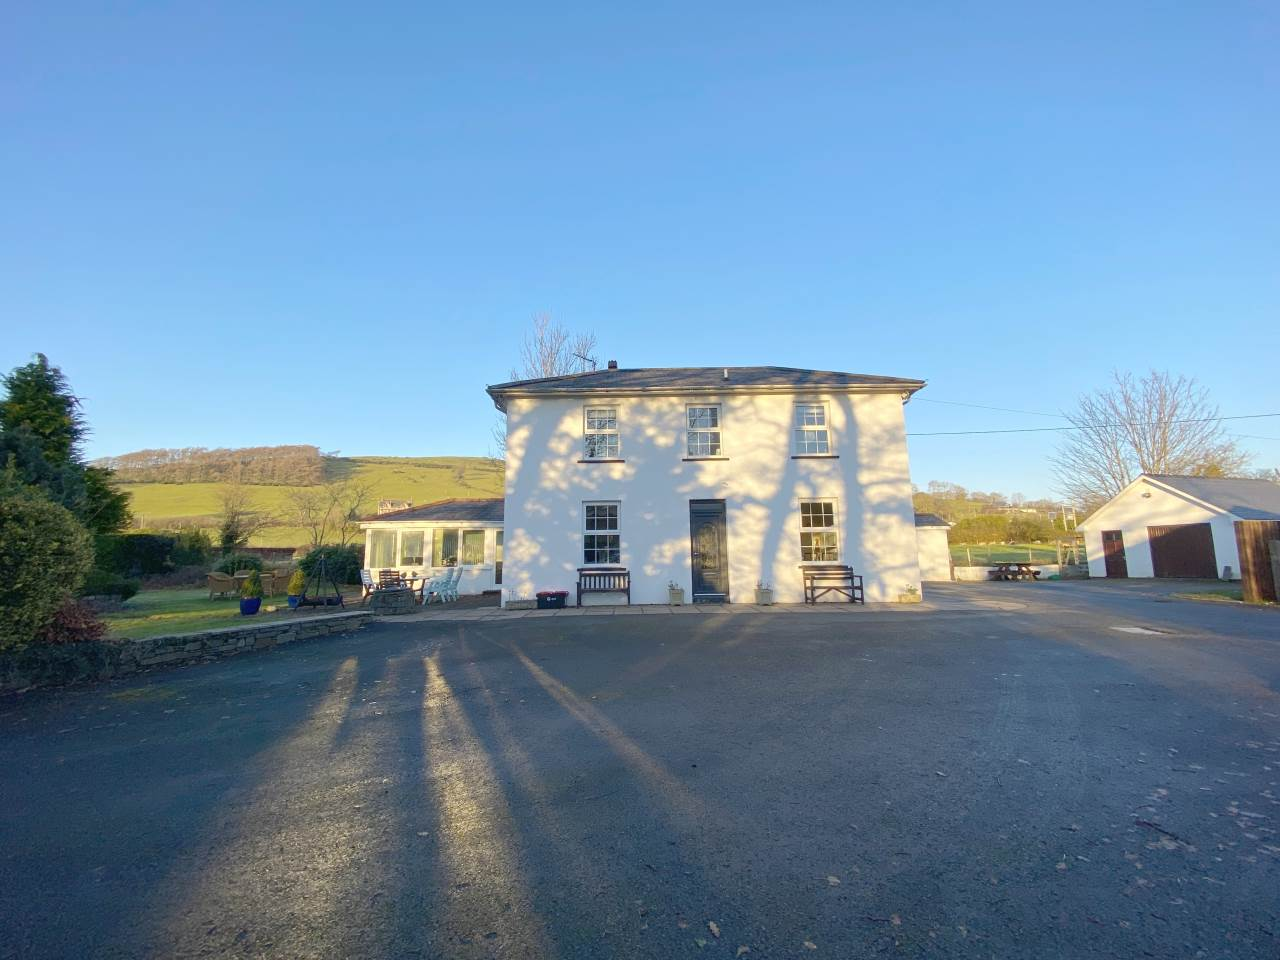 4 bed house for sale in Capel Bangor, Aberystwyth, SY23